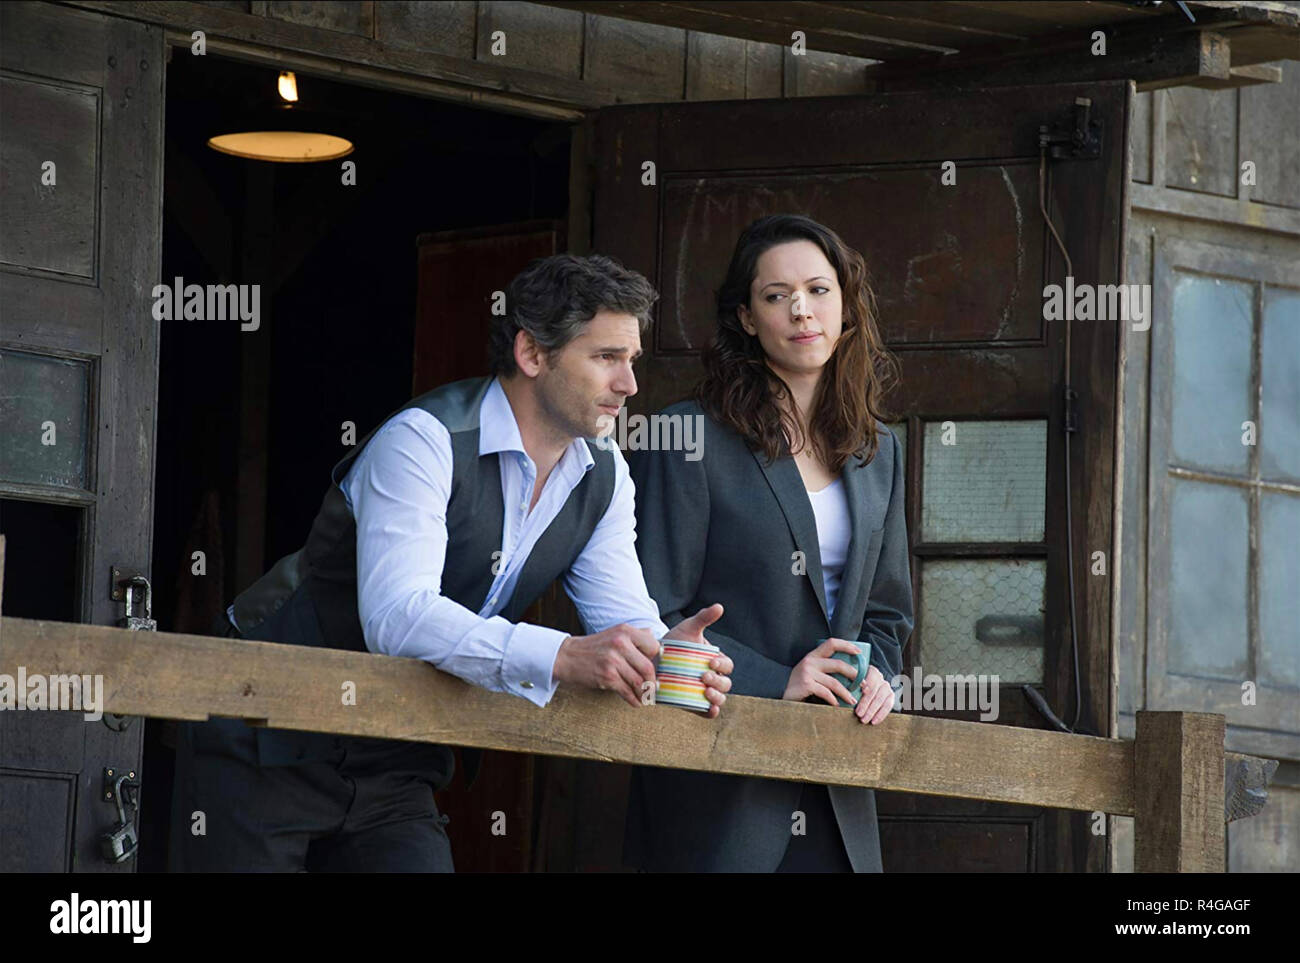 CLOSED CIRCUIT 2013 Working Title film with Rebecca Hall and Eric Bana - Stock Image